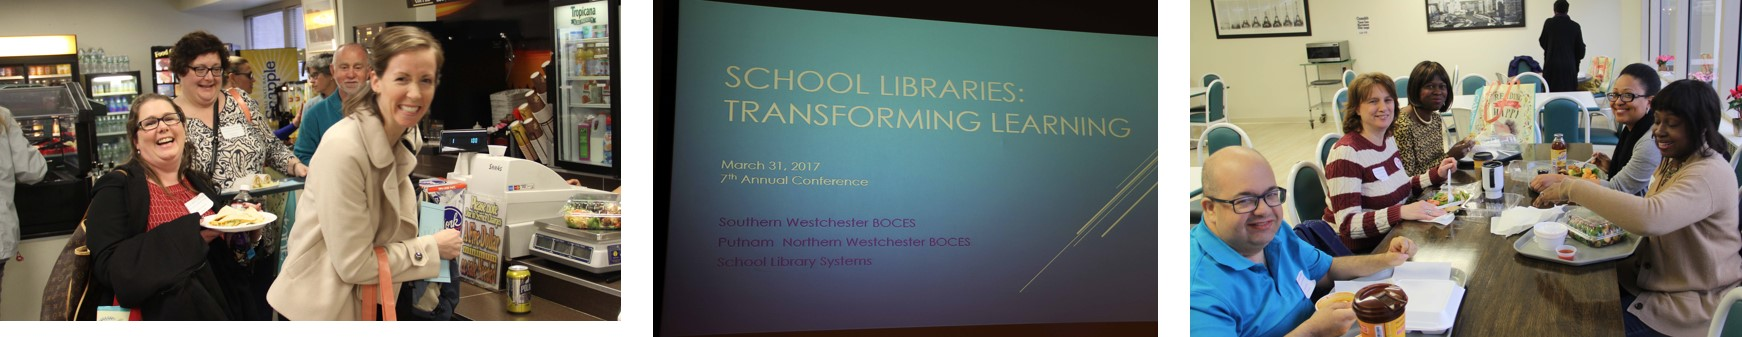 School library system home page swboces school library system conference slide fandeluxe Image collections